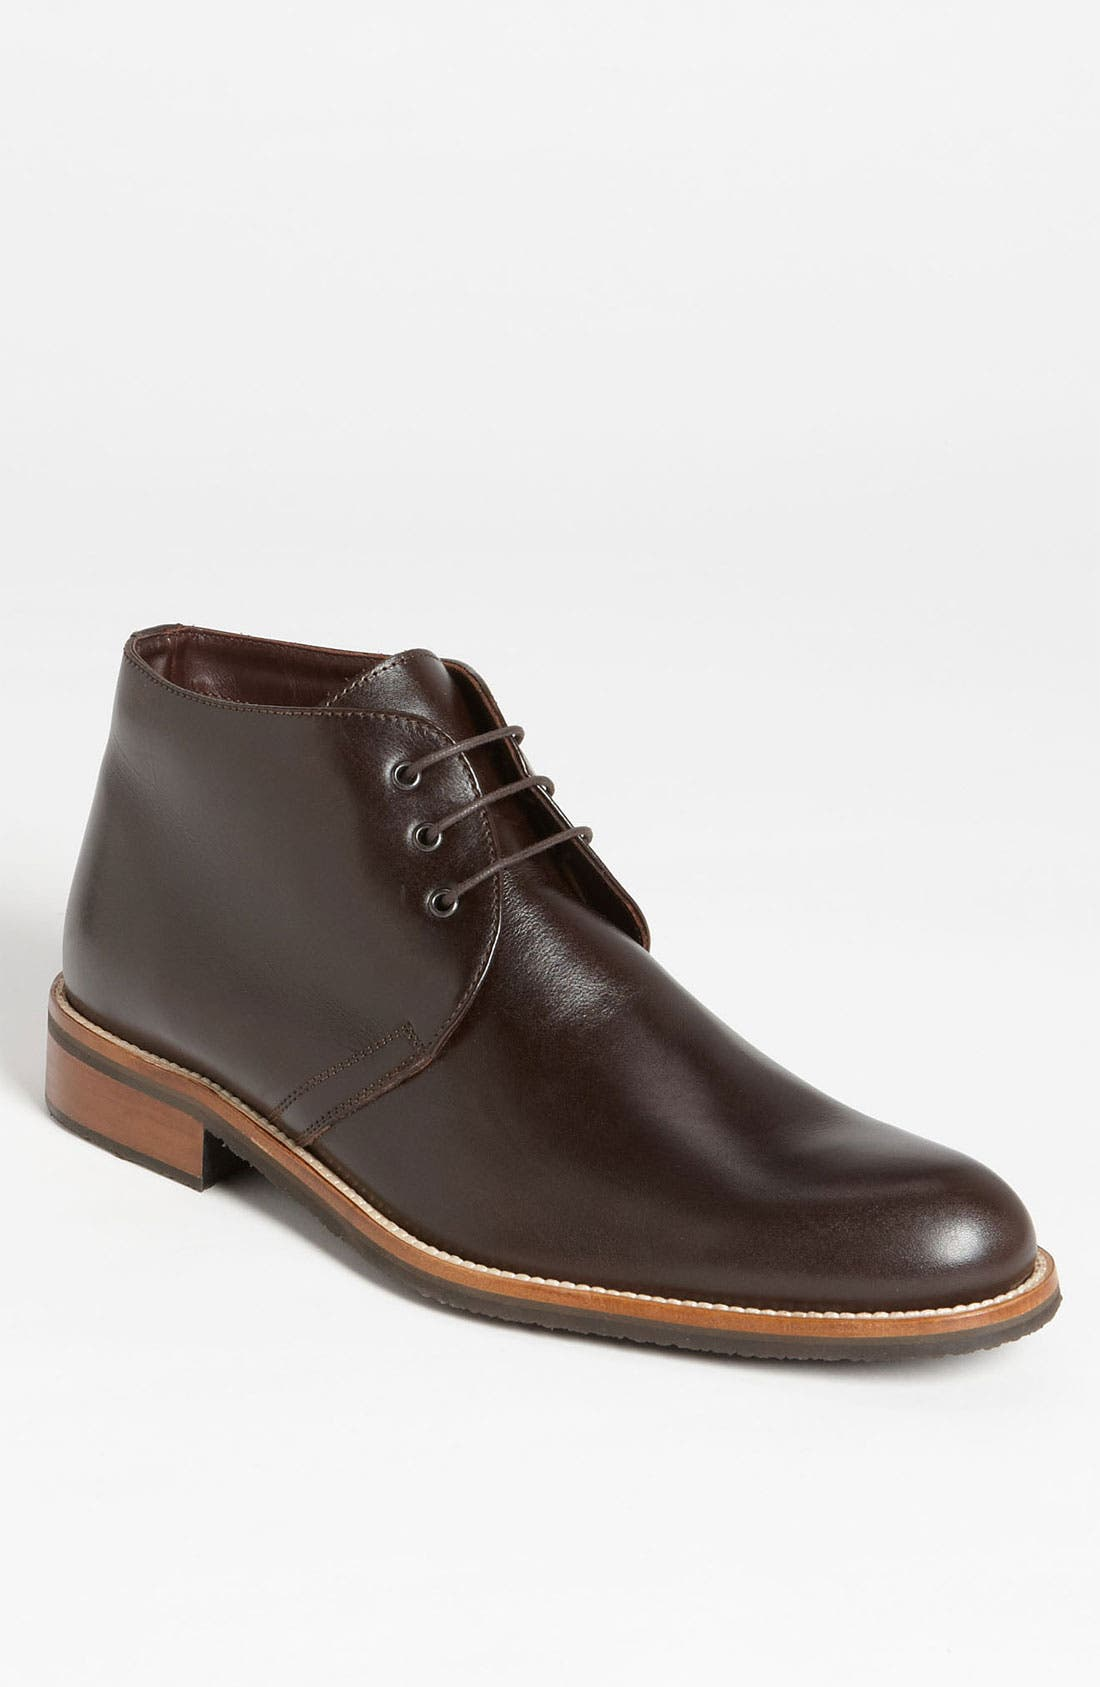 Main Image - Thomas Dean Polished Chukka Boot